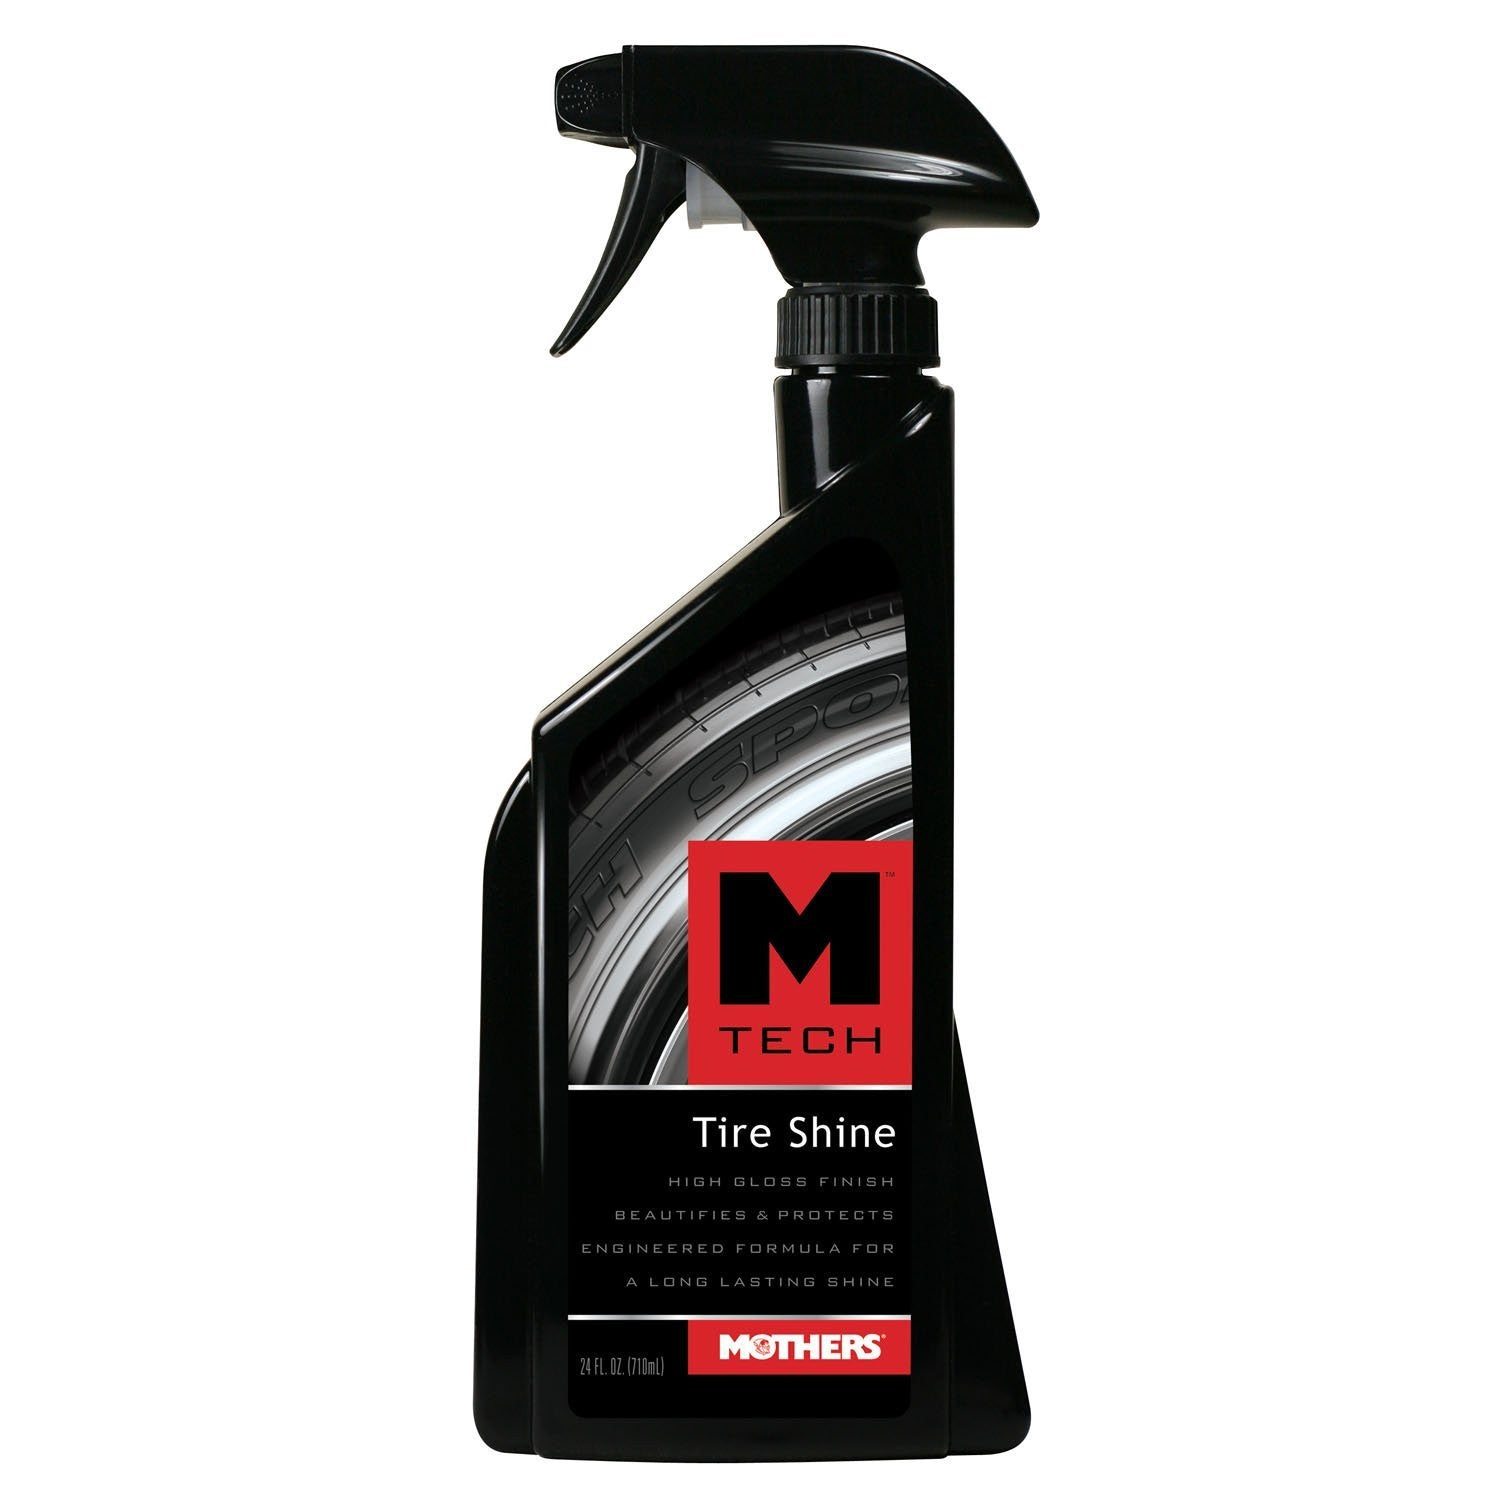 MOTHERS M-Tech Tire Shine 24OZ